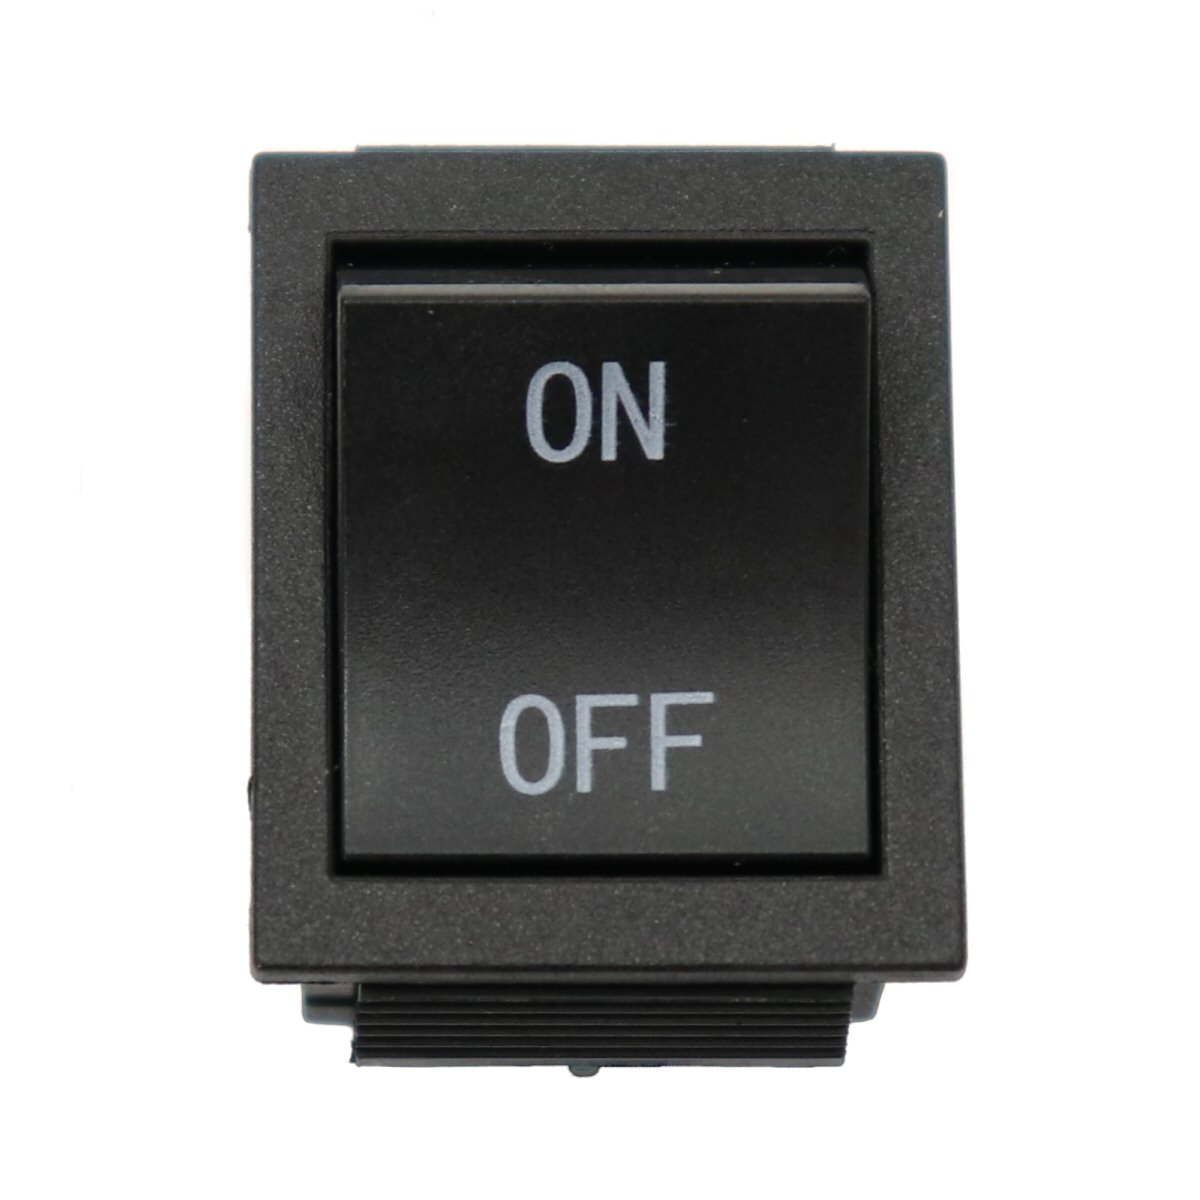 On/Off Switch for Razor/Currie